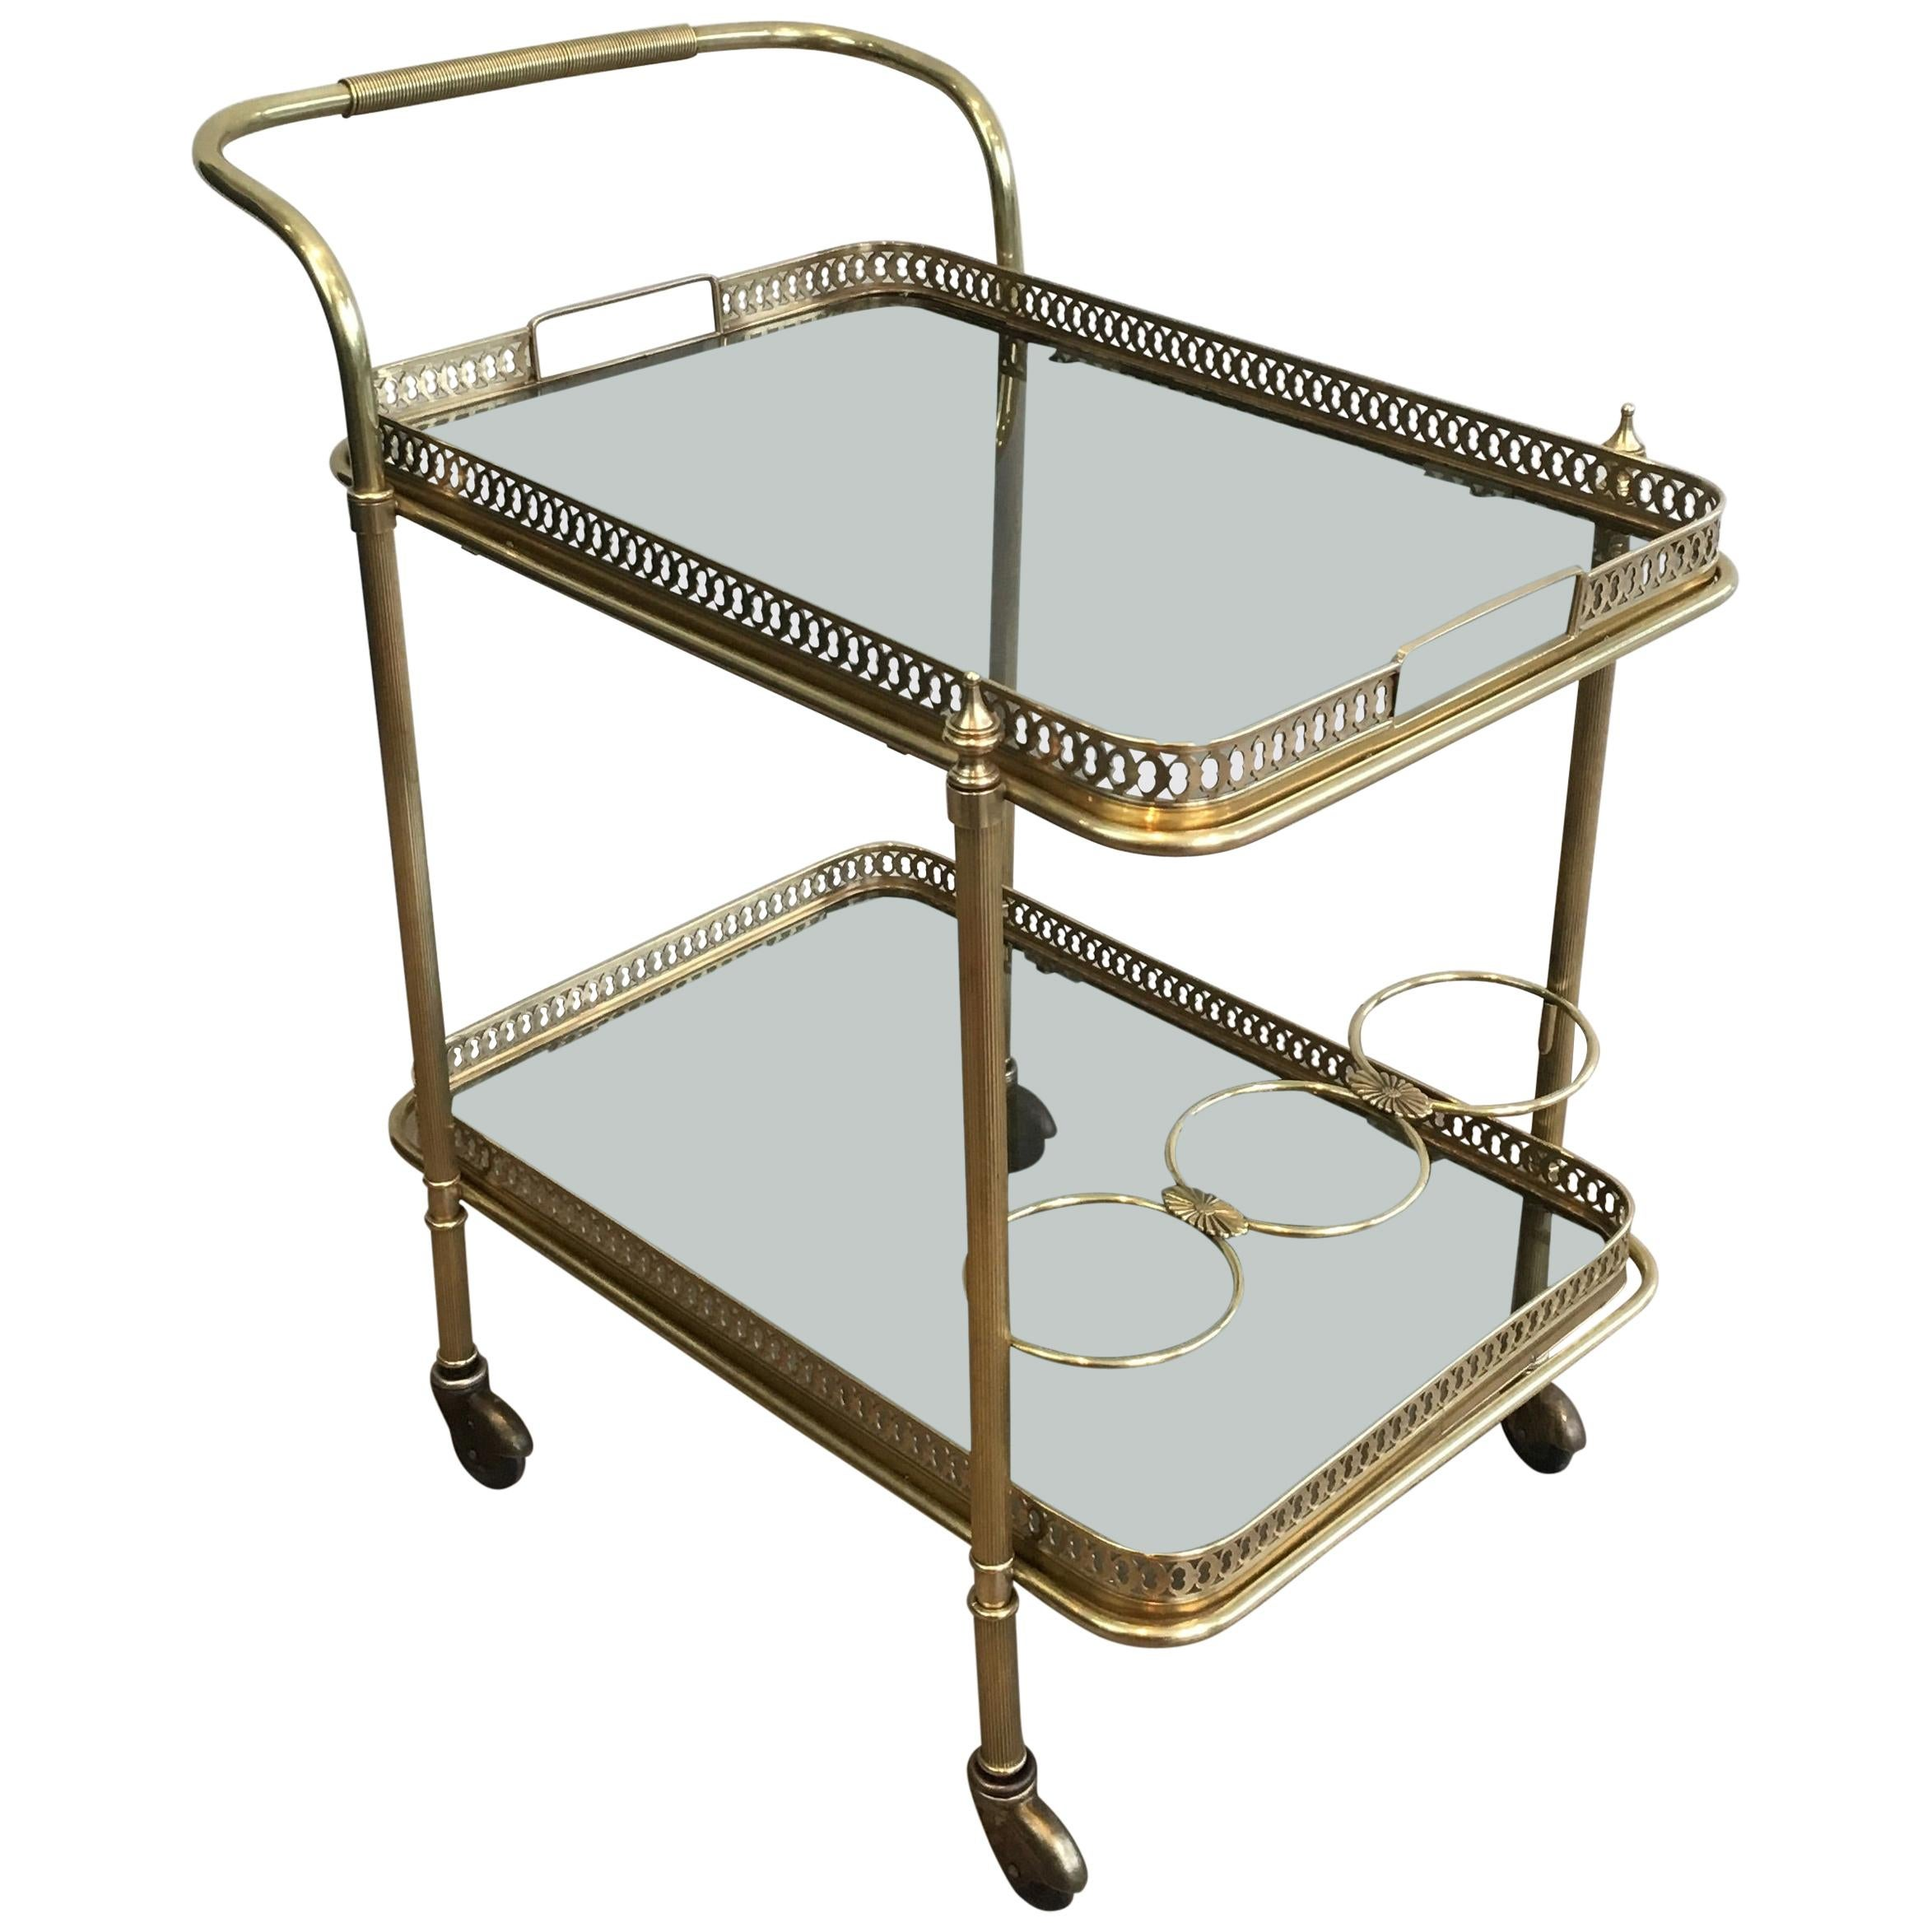 In the Style of Maison Jansen, Neoclassical Brass Bar Cart with Blueish Glass